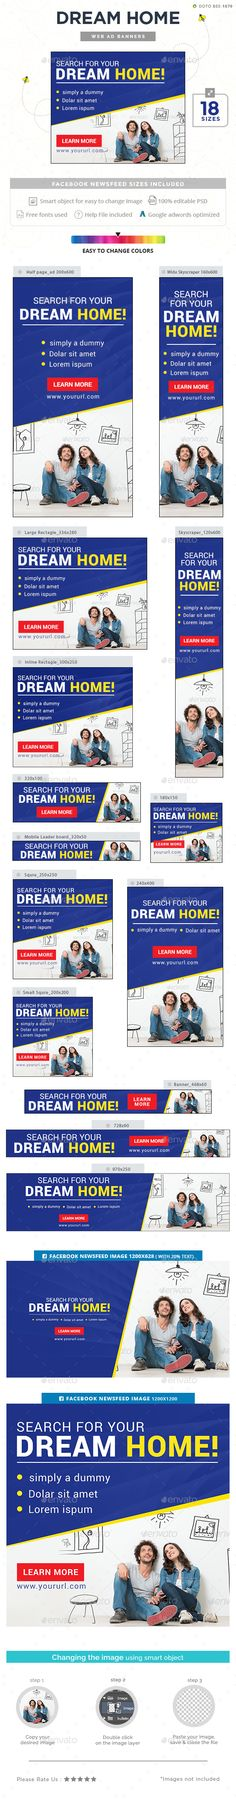 Dream Home Ad Banners